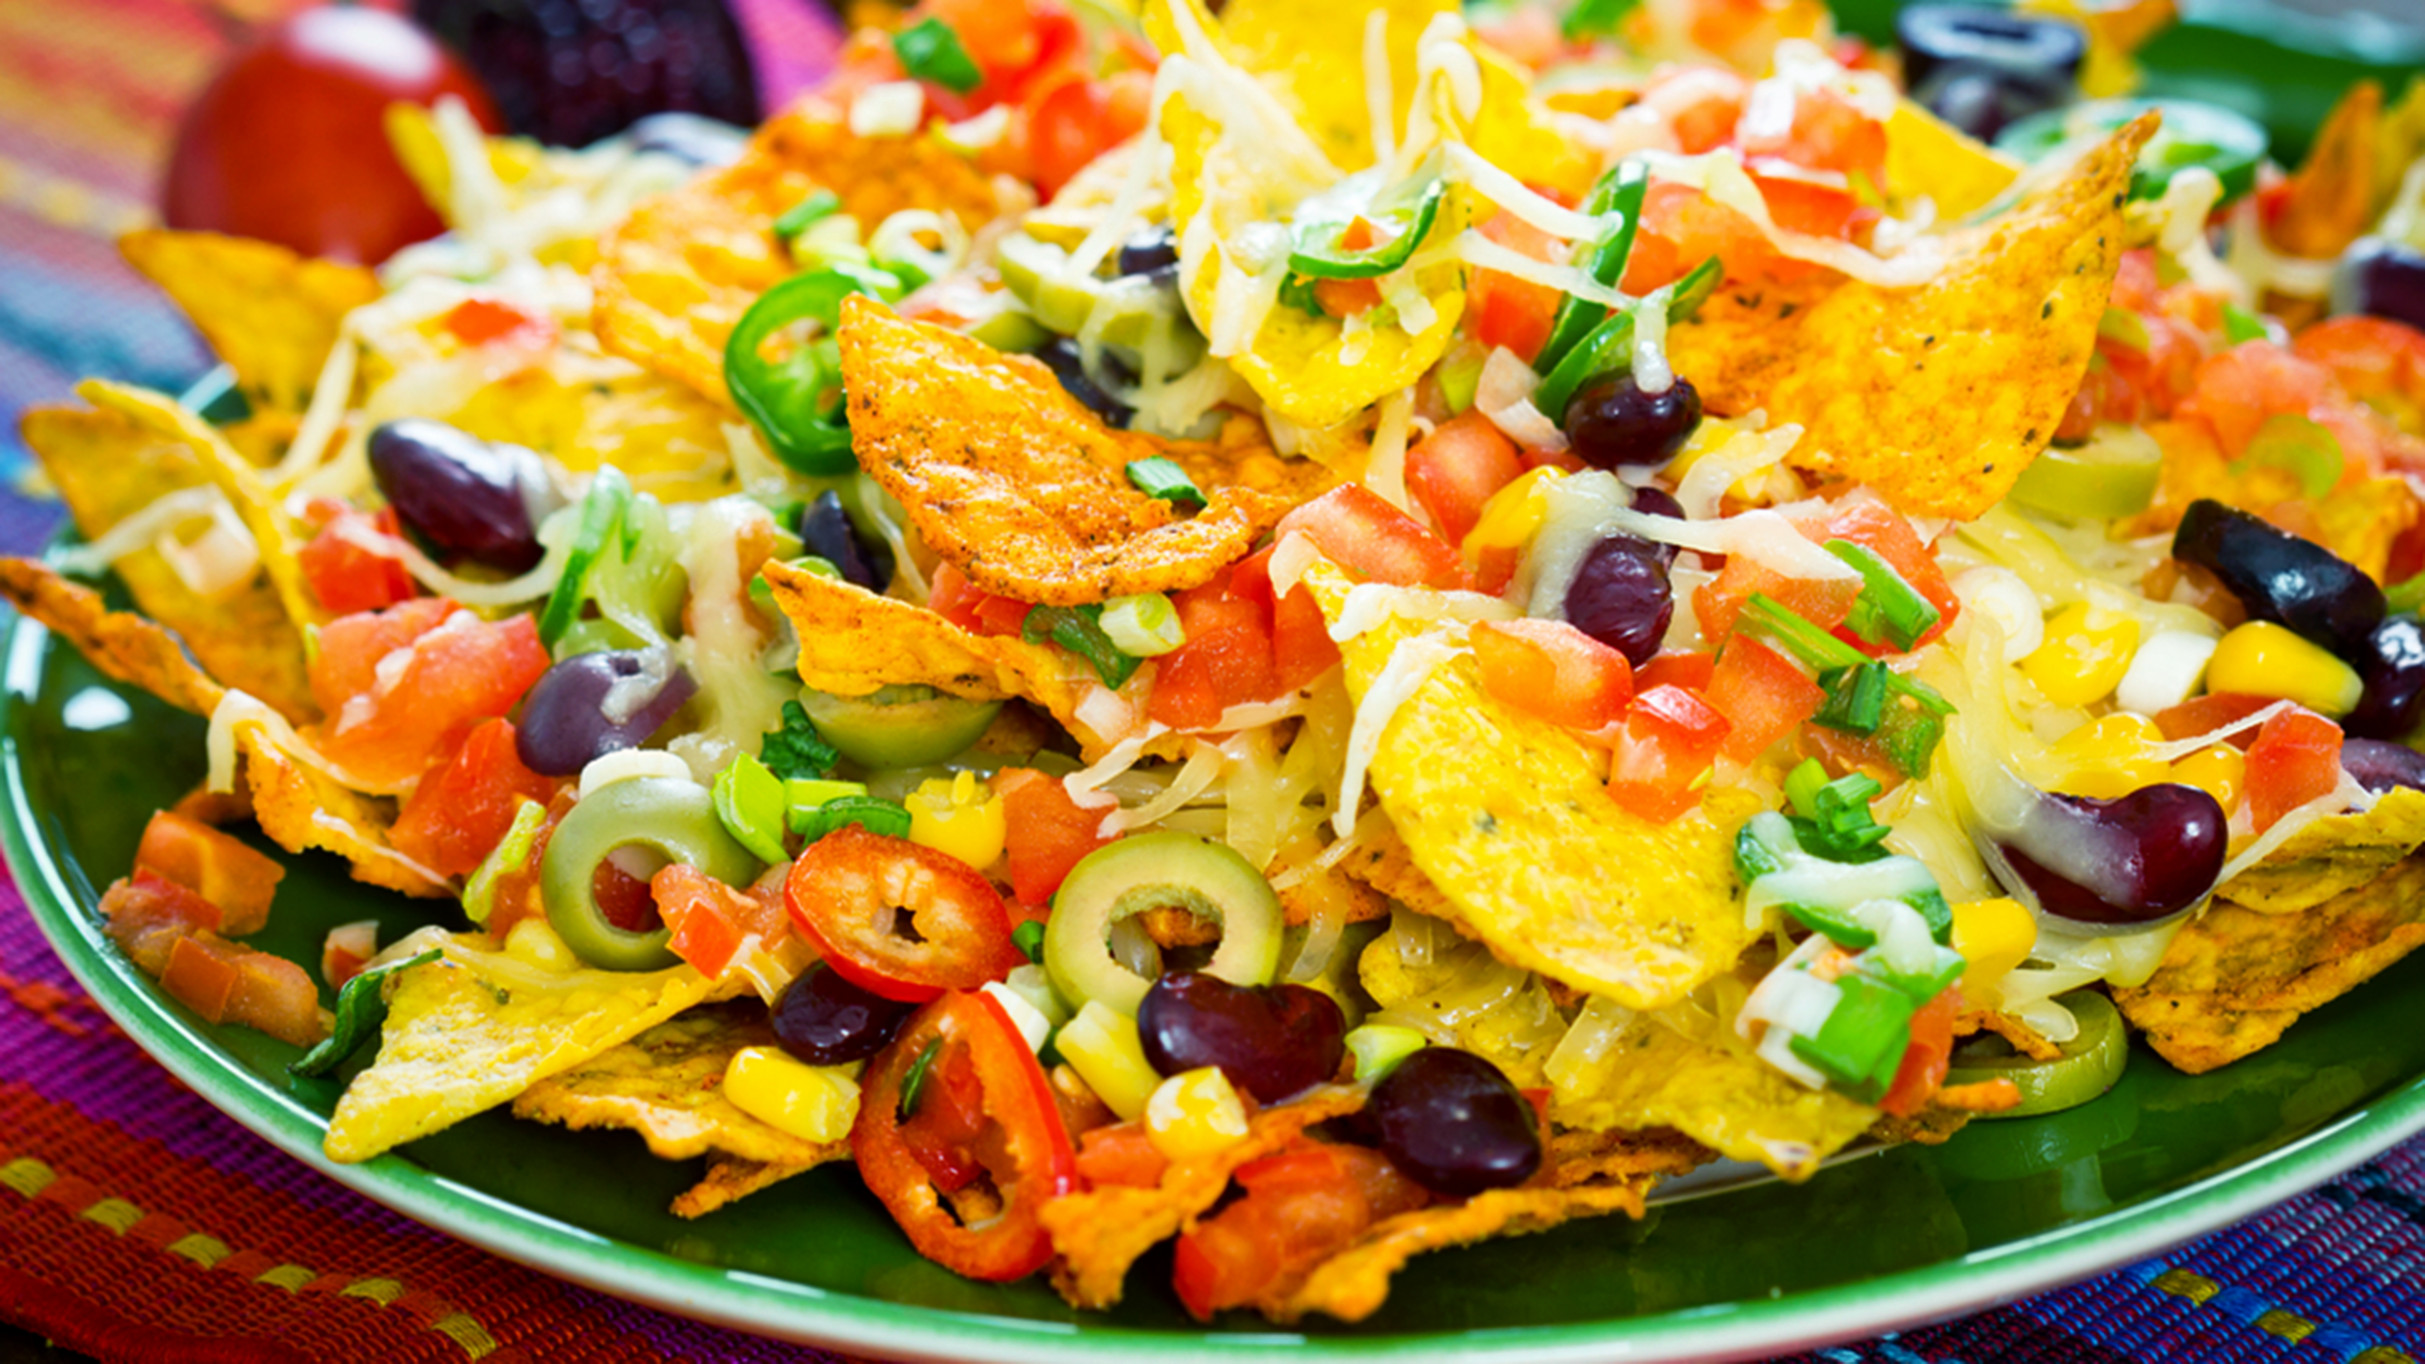 Nacho recipes: 13 delicious chip toppers, from healthy to loaded - recipe vegetarian nachos healthy